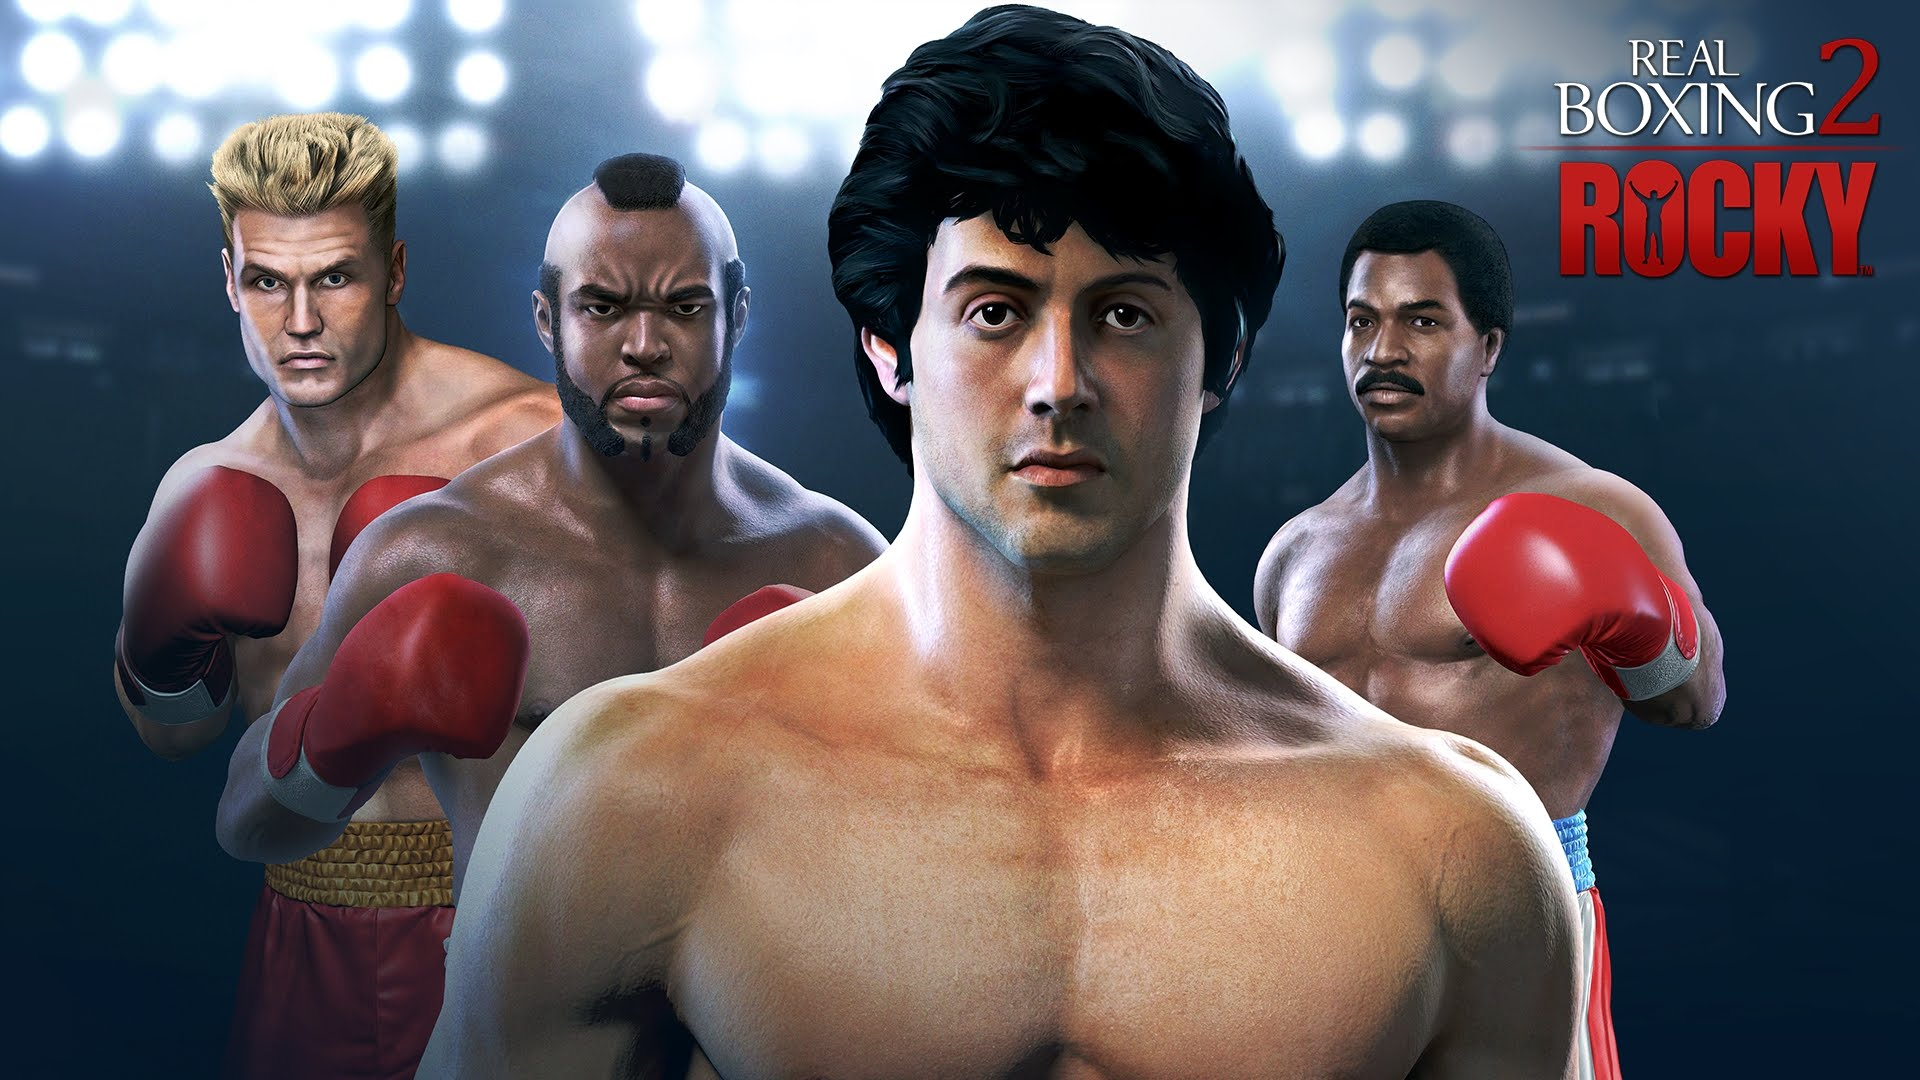 Boxing star – mobile sports game celebrates 10 million downloads.